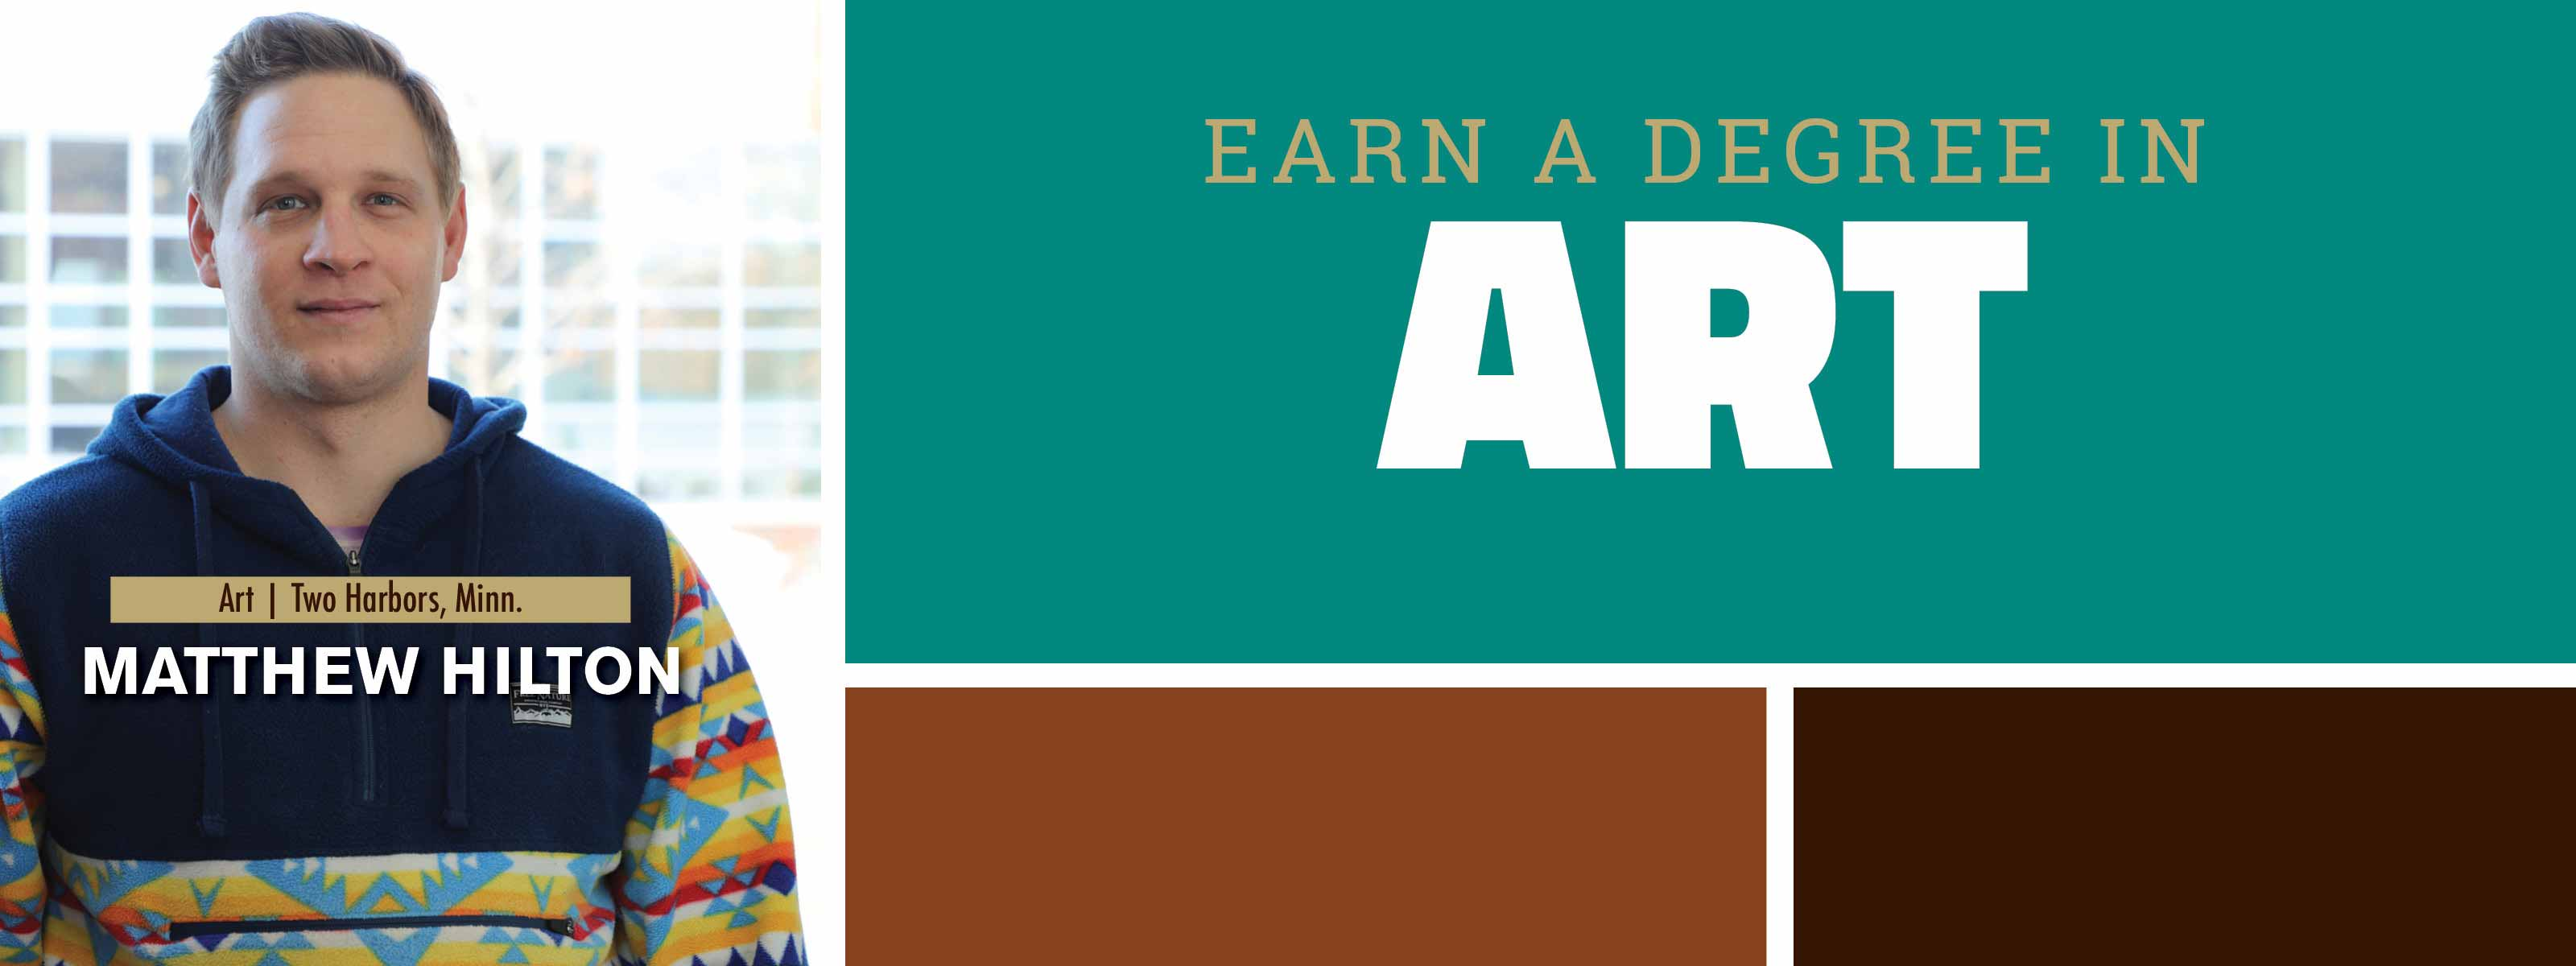 Earn A Degree In Art - Discover. Engage. Lead.